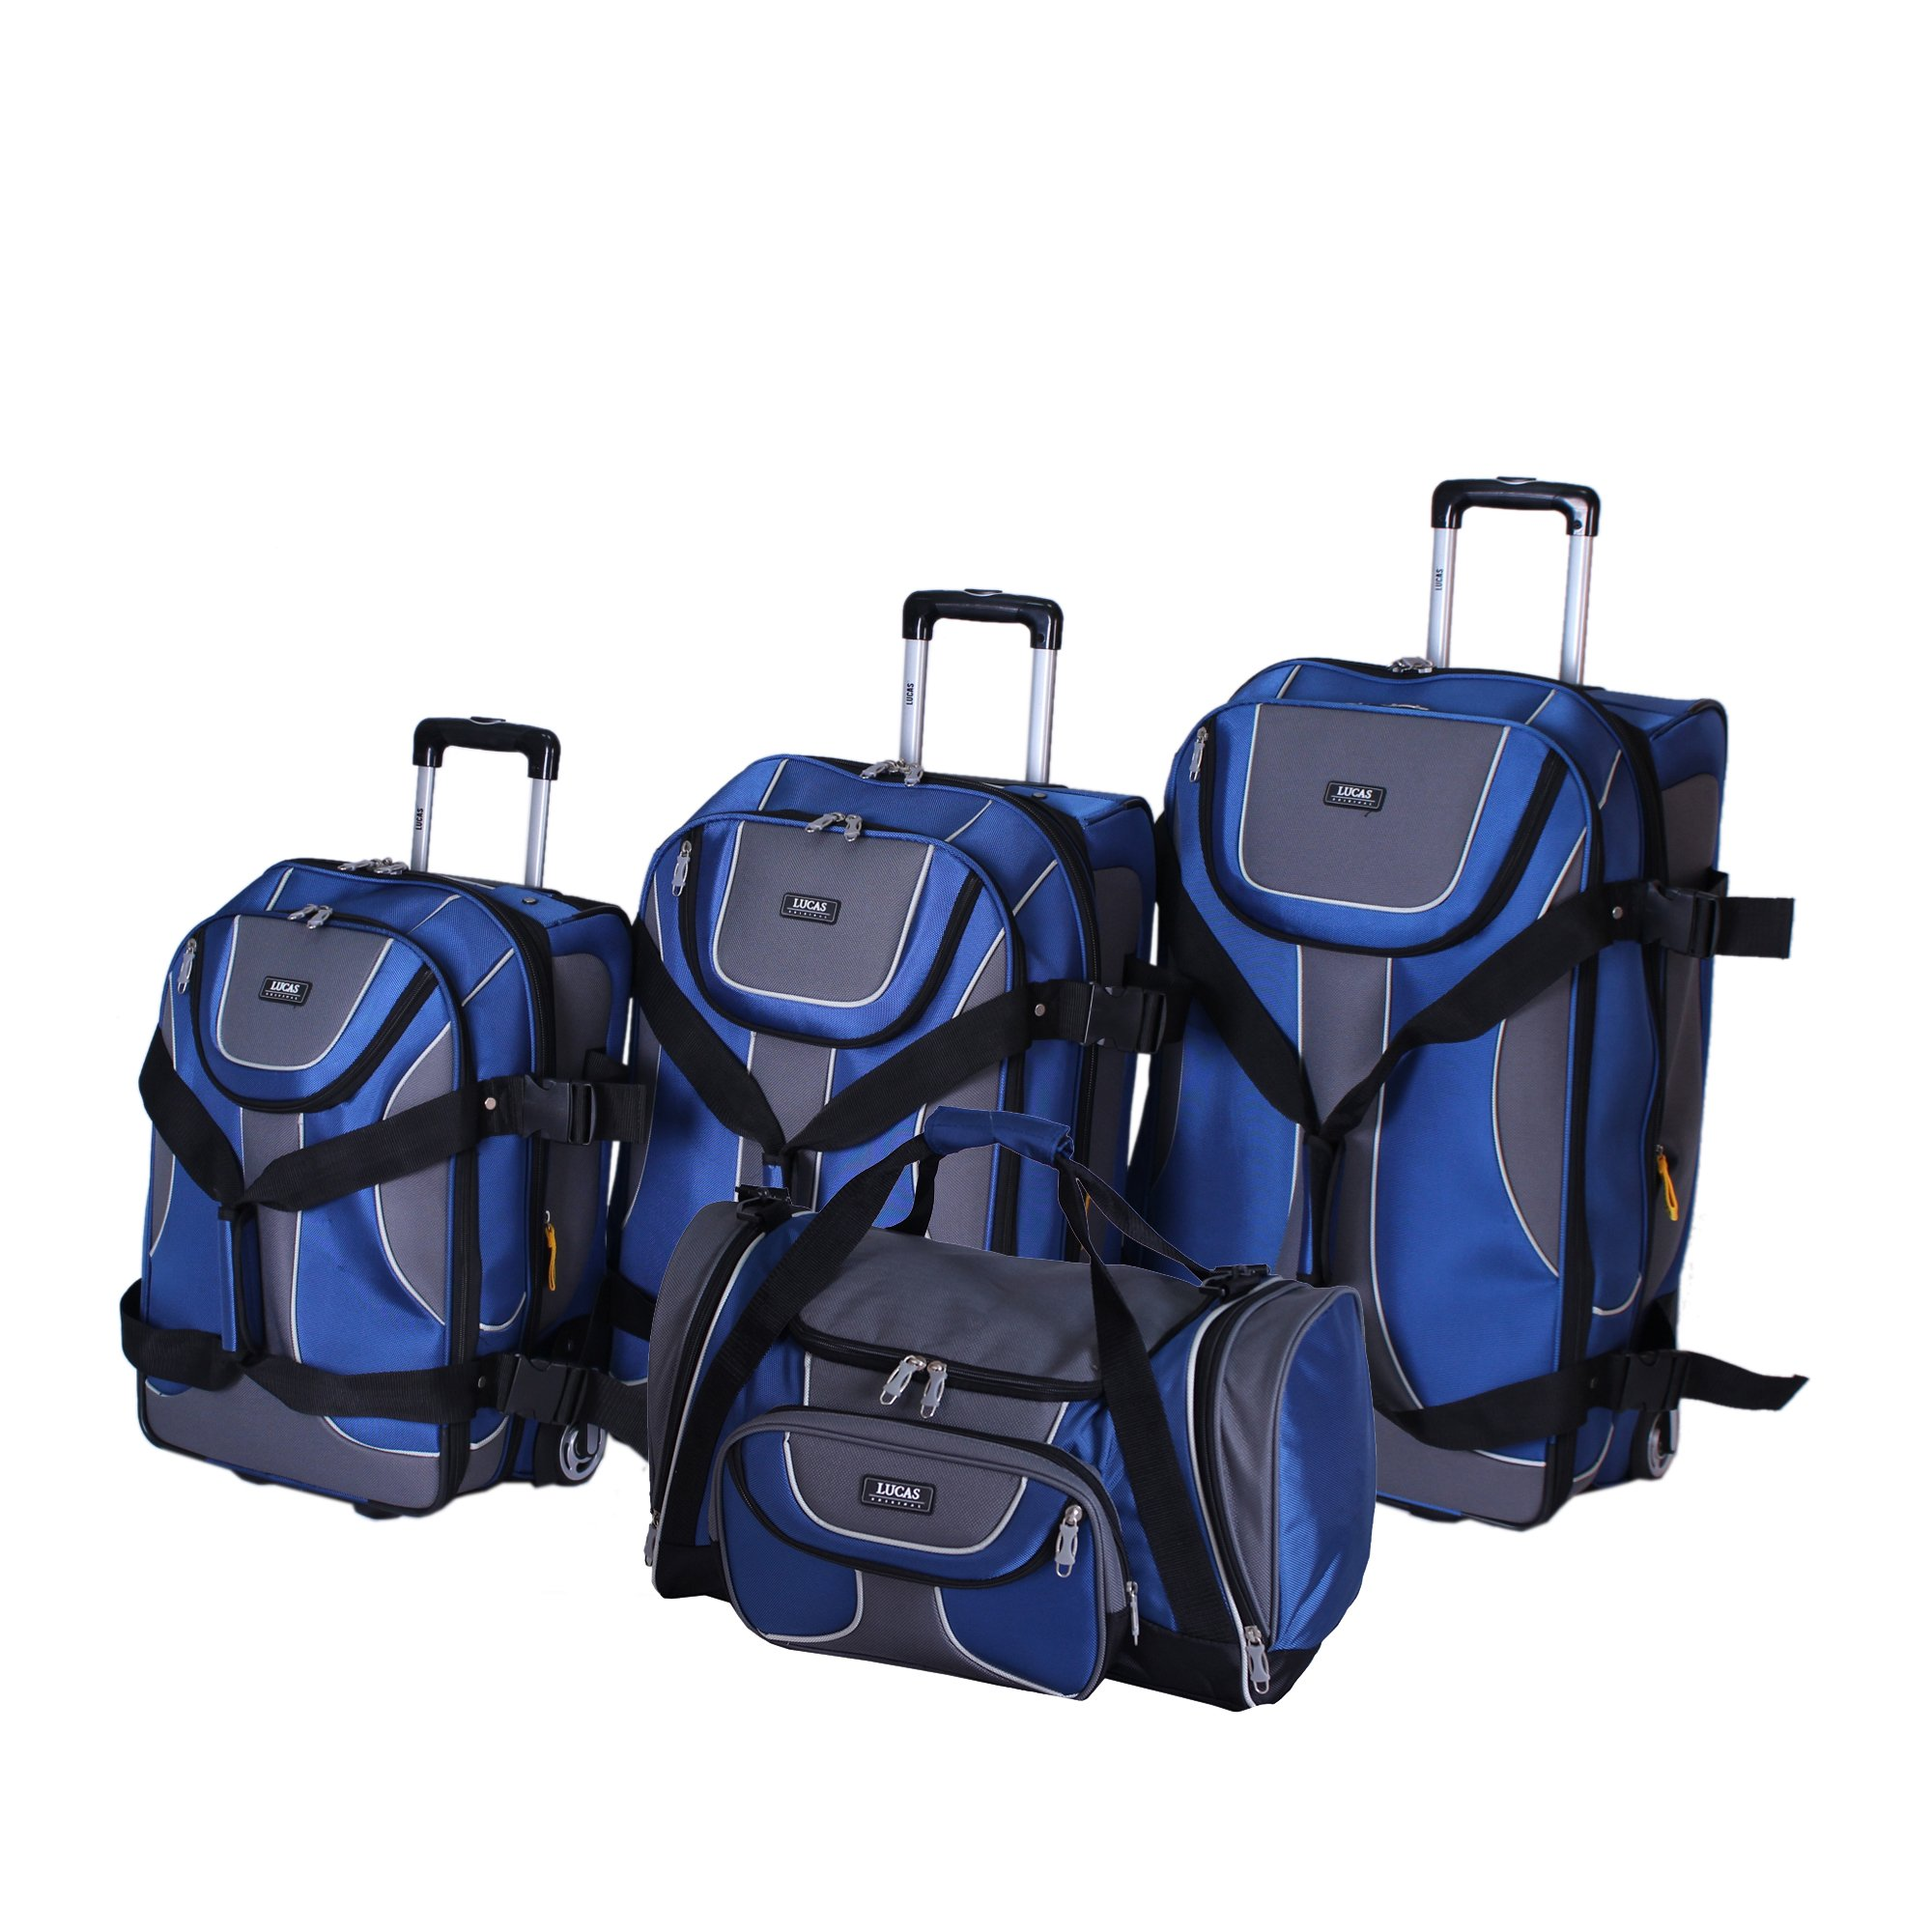 Lucas Luggage Sport 4-Piece Expandable Wheeled Upright Luggage Set (Blue)